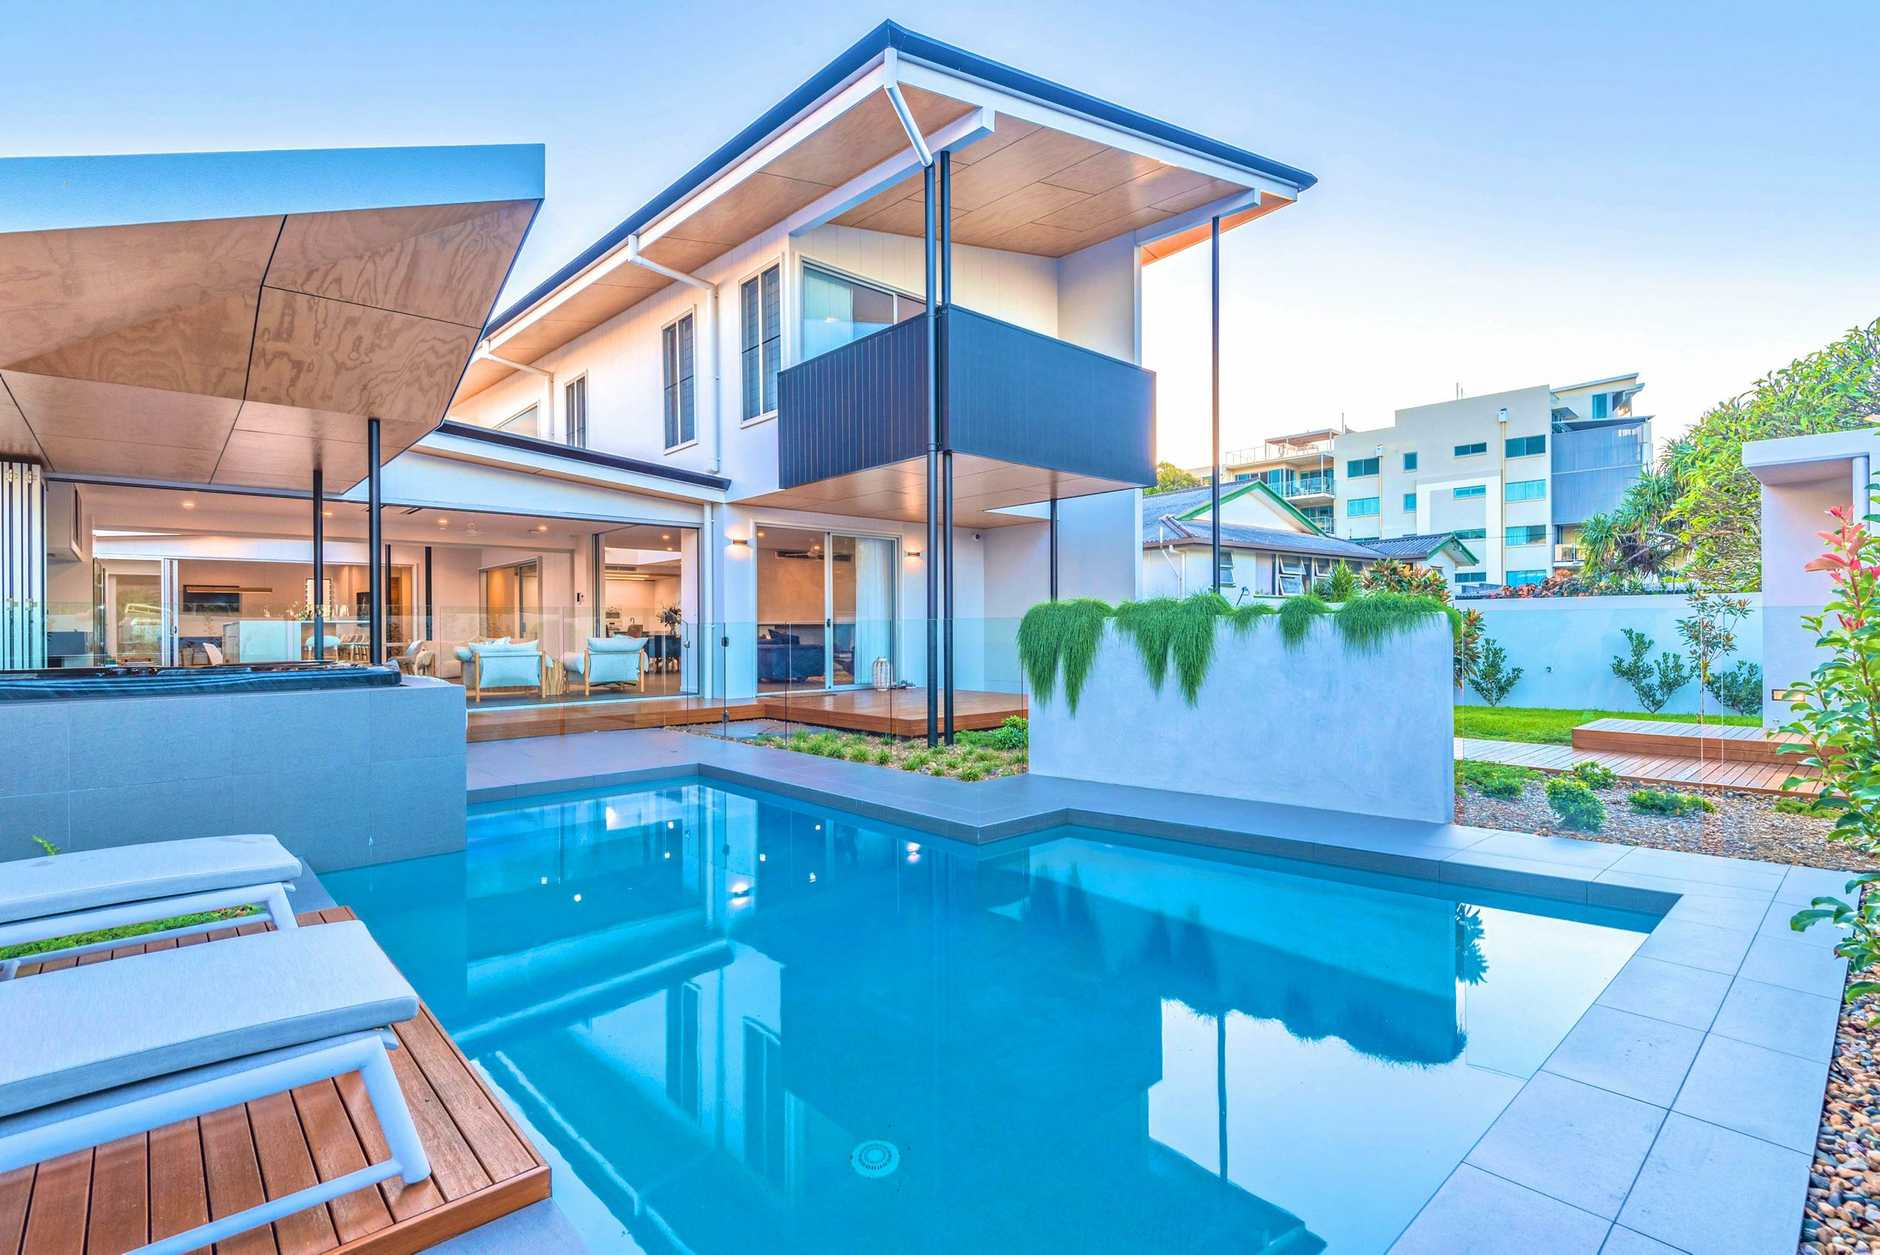 HOUSE OF THE YEAR: Steve Coates Constructions took out three awards at the Master Builders Awards on Friday last week. The mansion situated at 2a Clarke Street, Bargara won house of the year for the Wide Bay Burnett region.